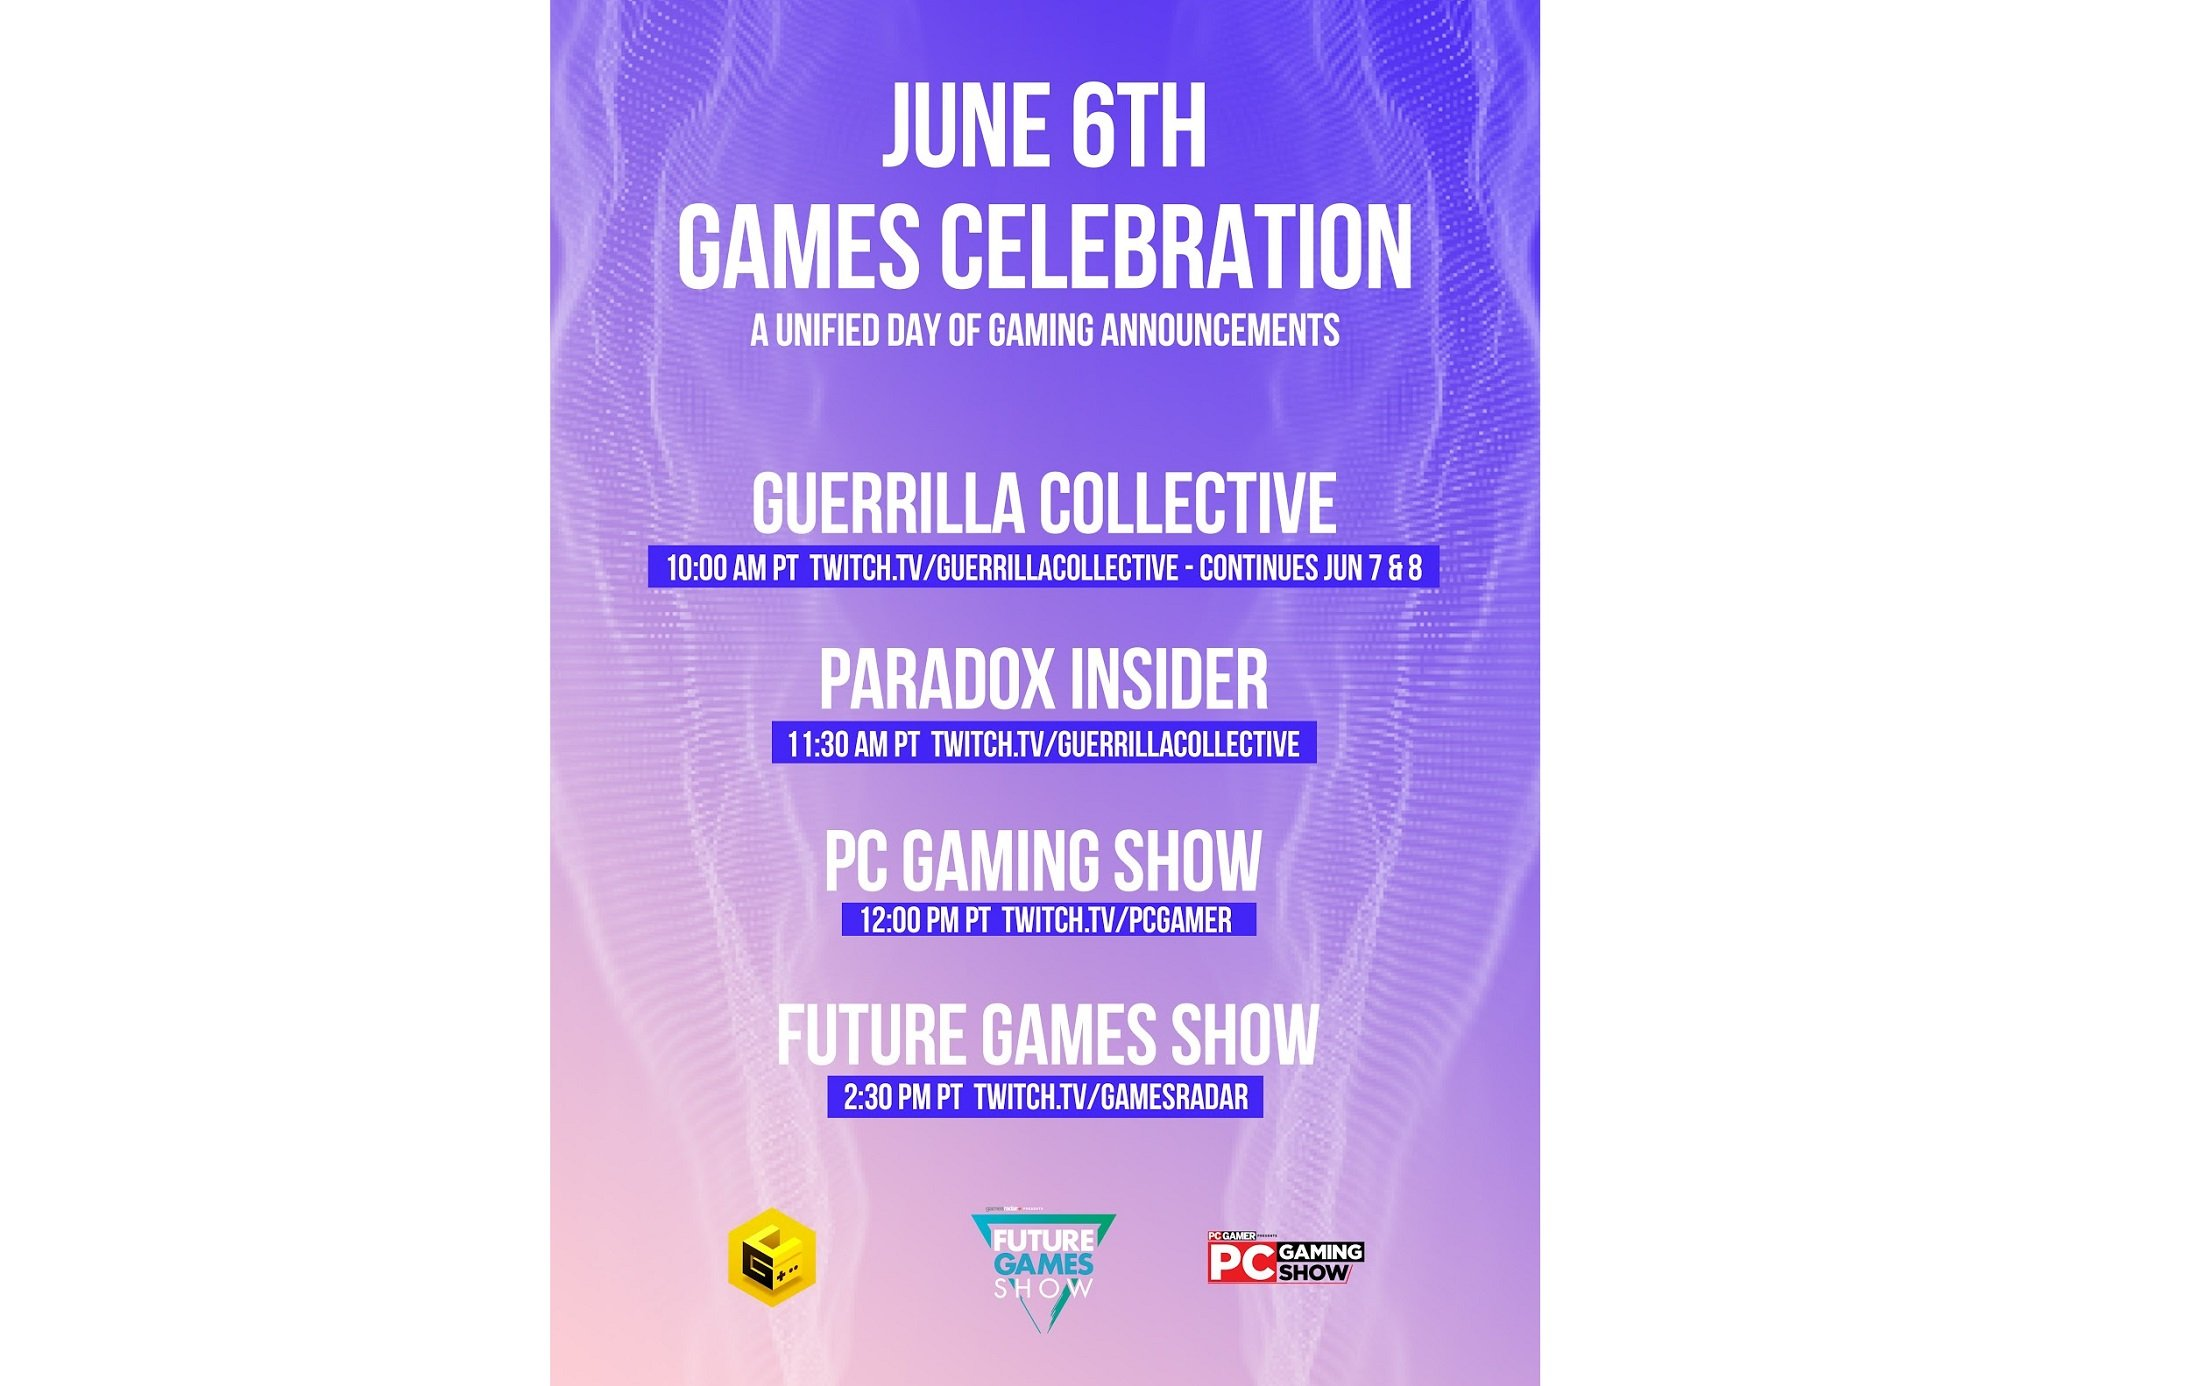 PC Gaming Show will air as part of the June 6th Game Celebration